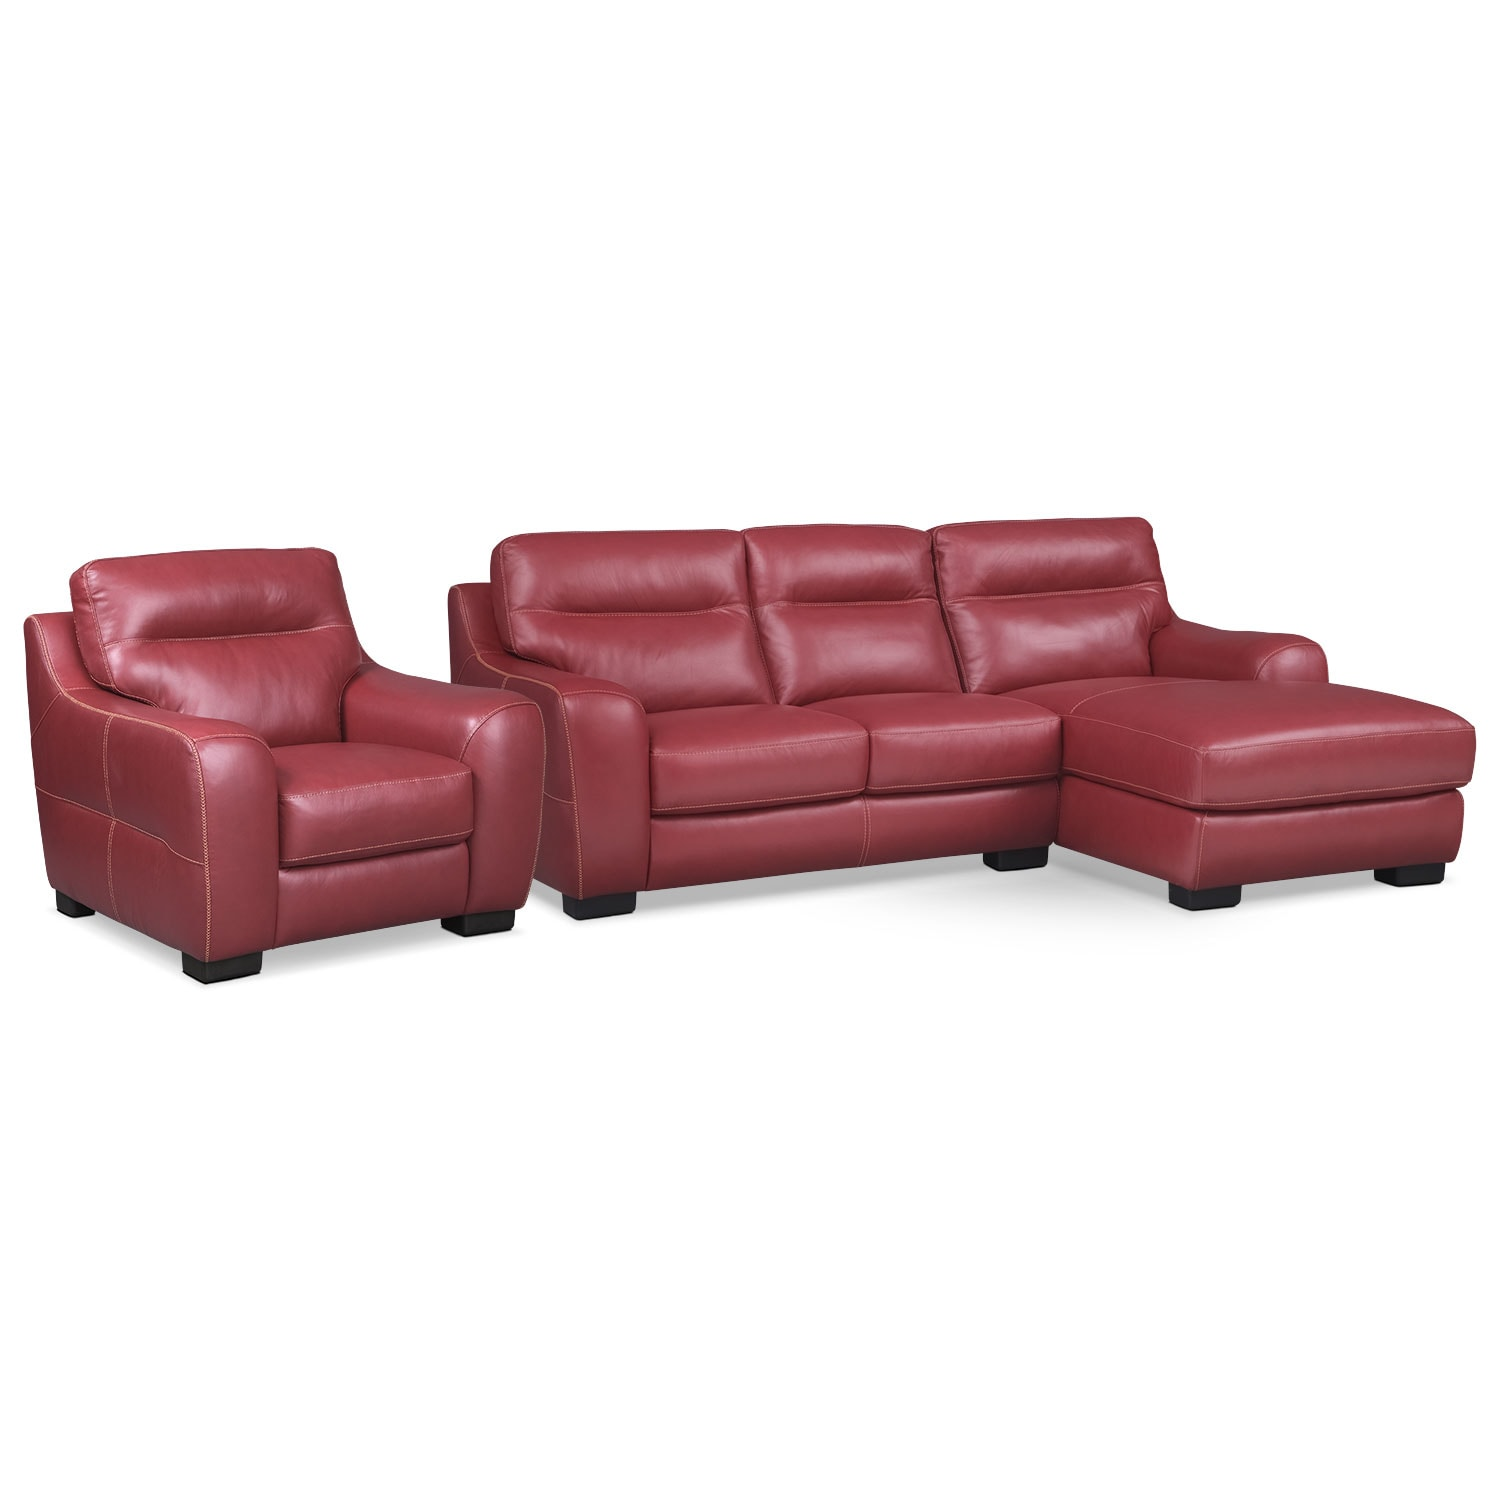 [Rocco Red 2 Pc. Right-Facing Chaise Sectional and Chair]